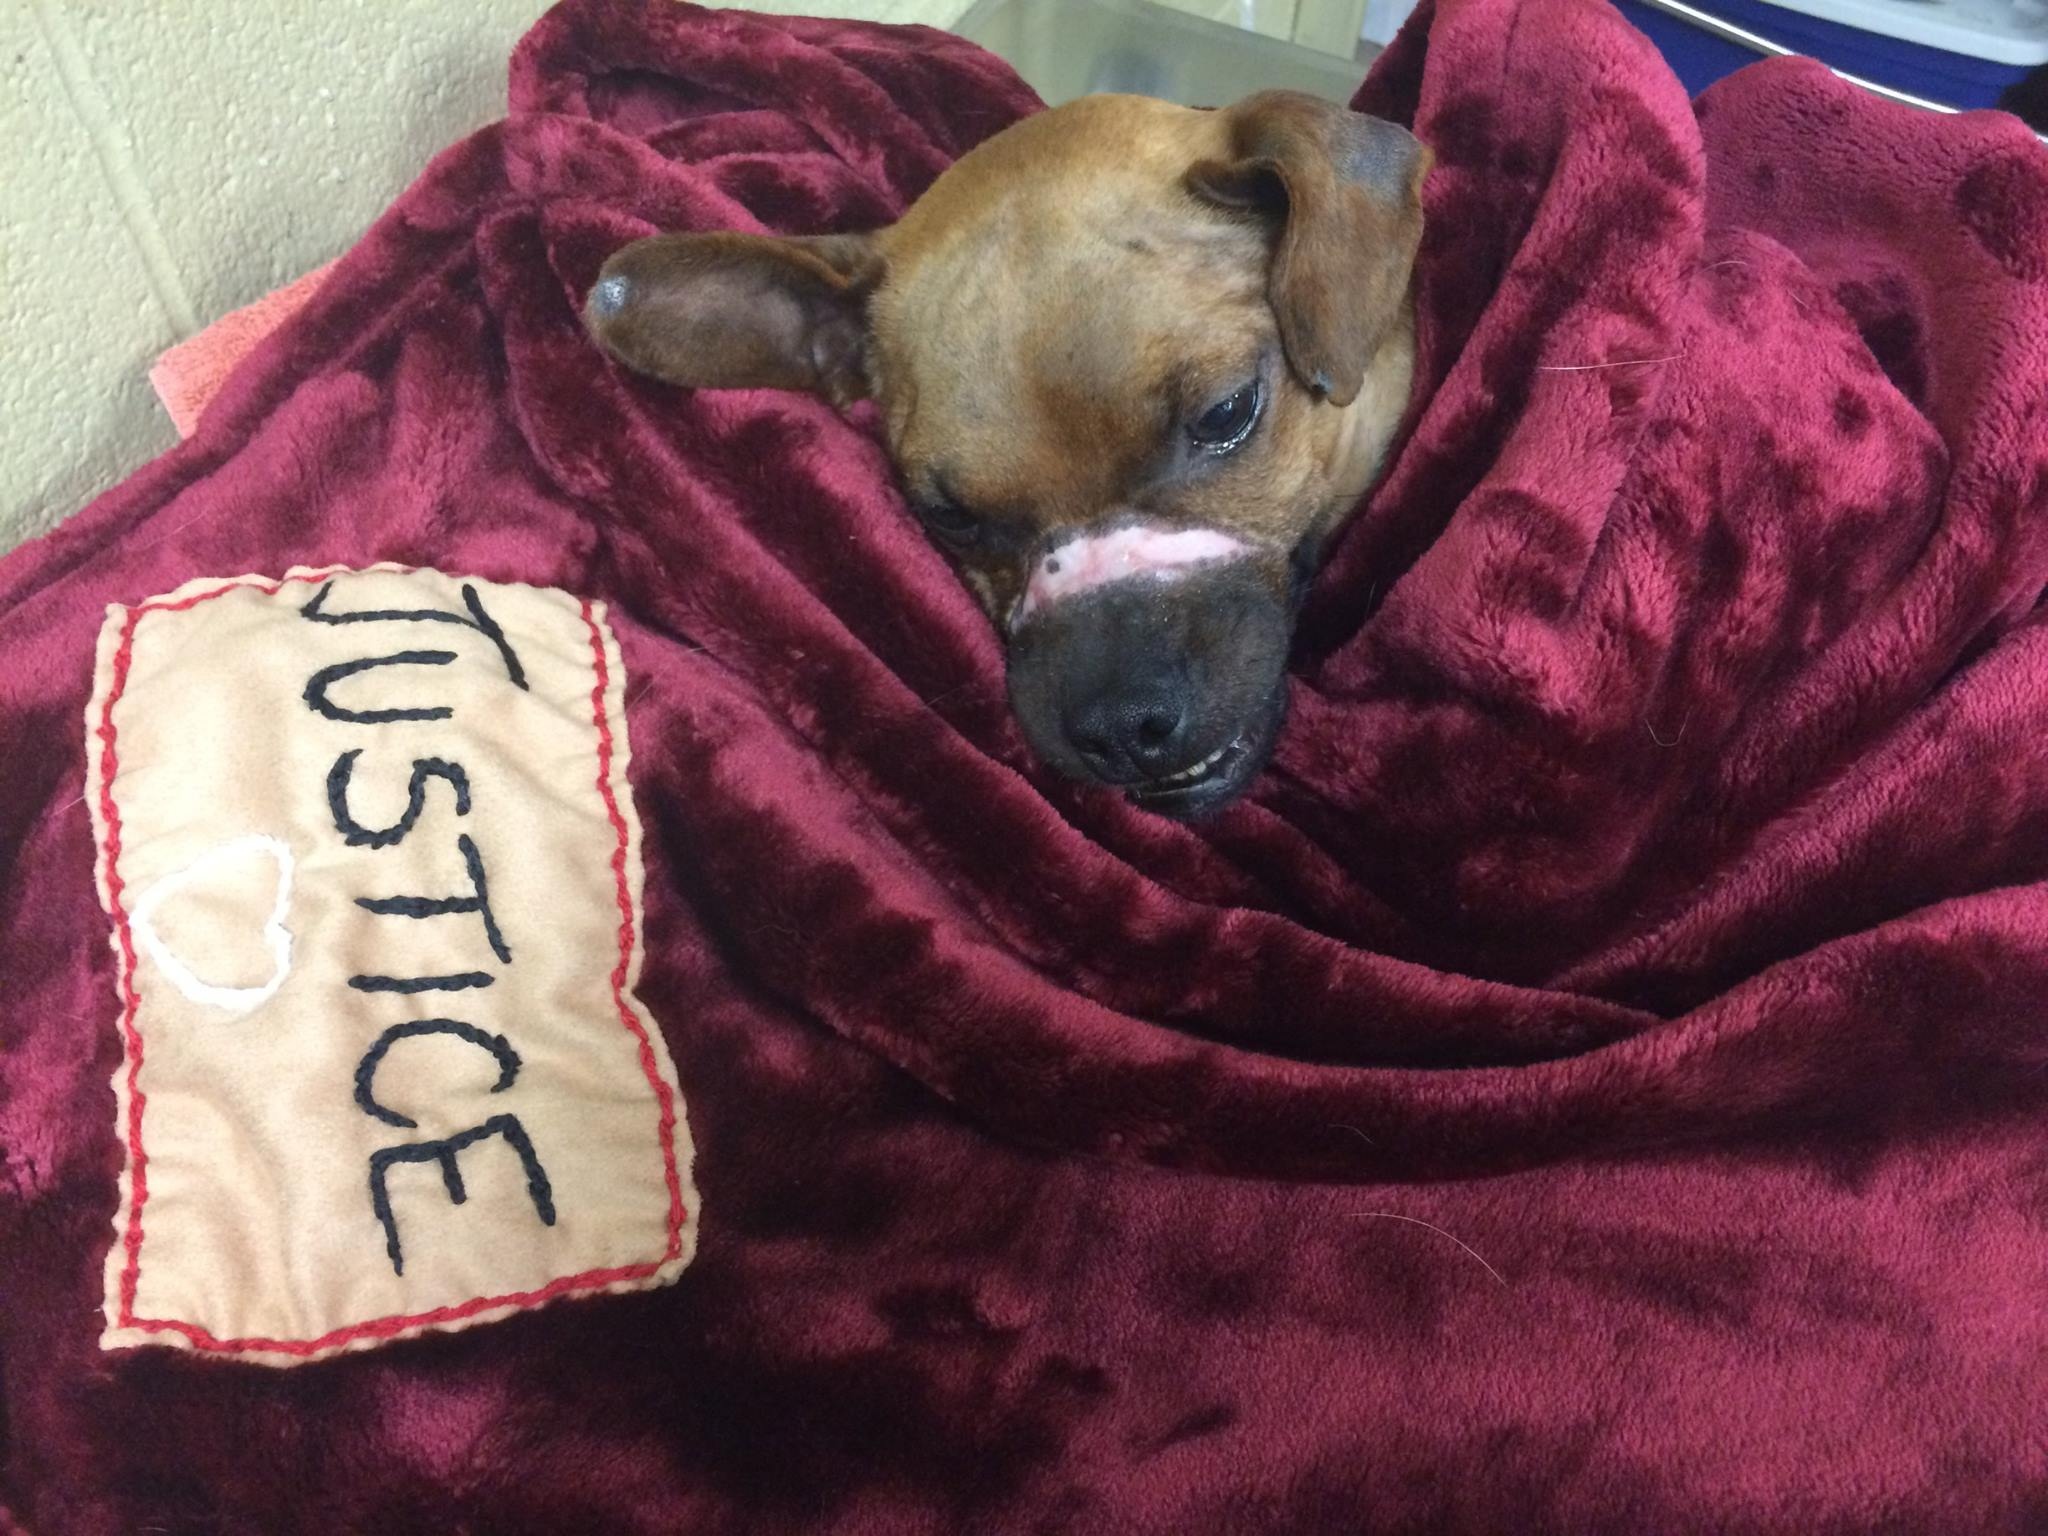 Justice following his neuter surgery. (Photo courtesy Windsor/Essex County Humane Society)